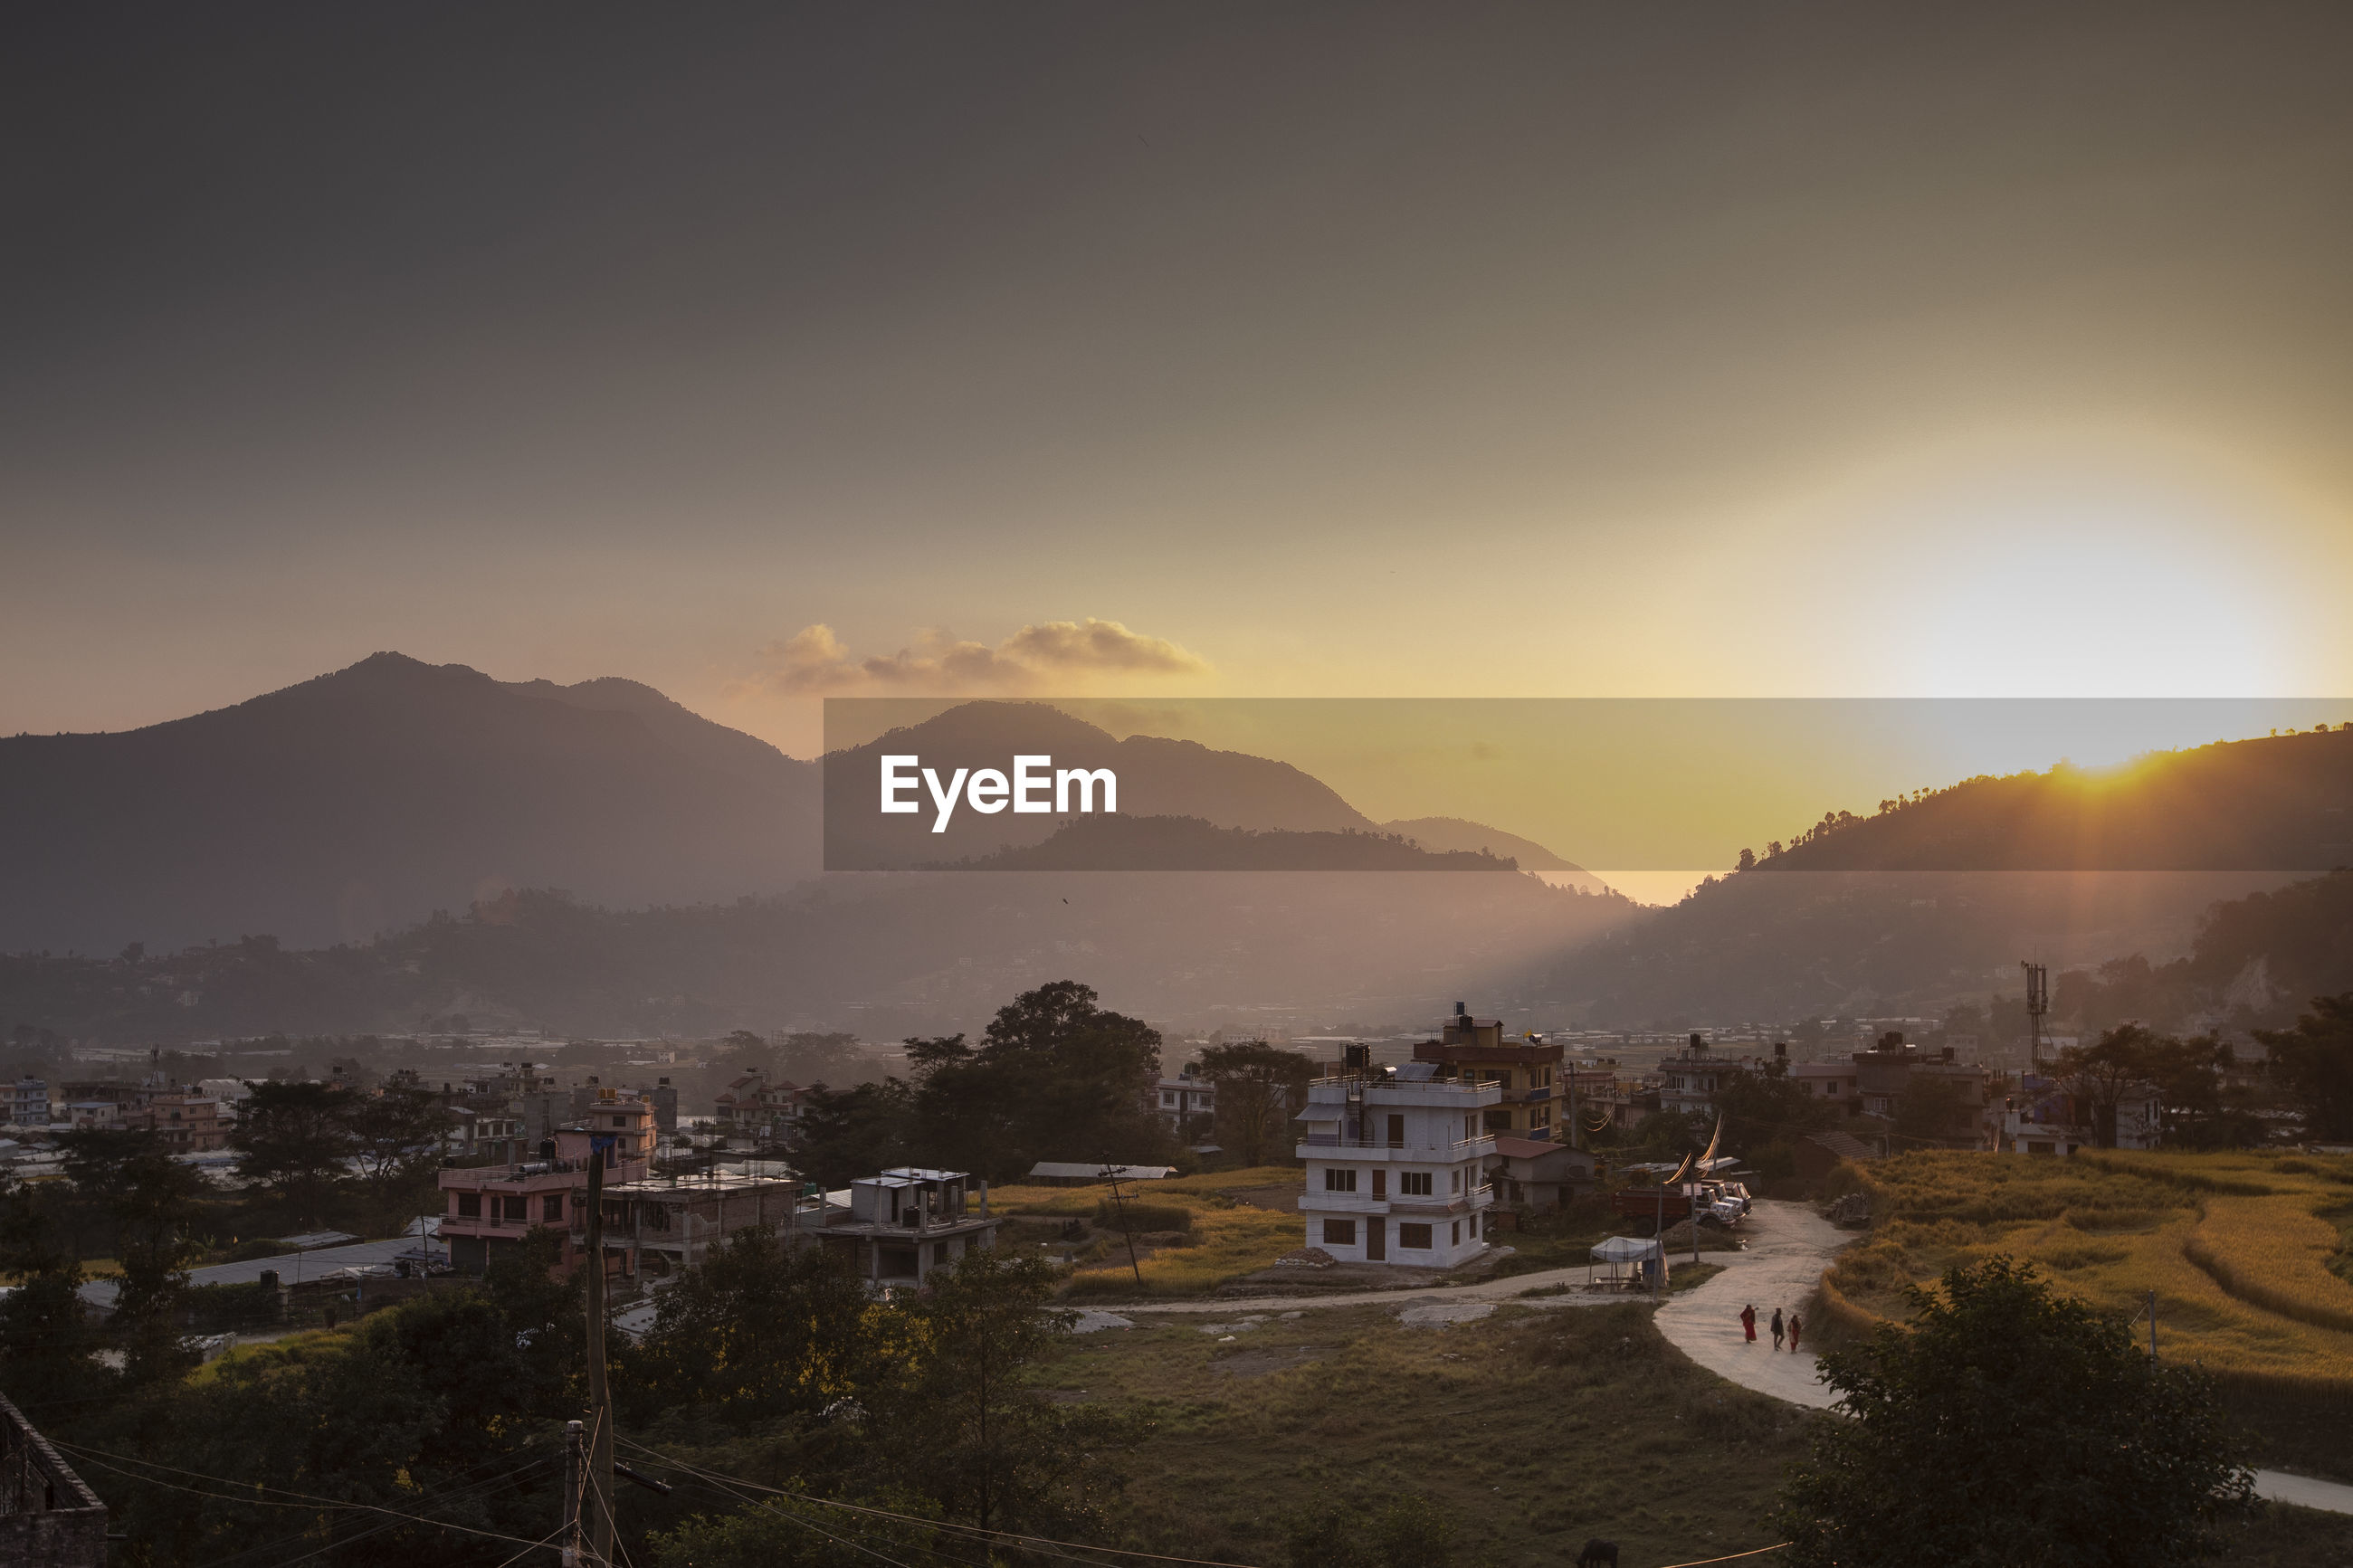 HIGH ANGLE VIEW OF TOWNSCAPE AND MOUNTAINS AGAINST SKY DURING SUNSET